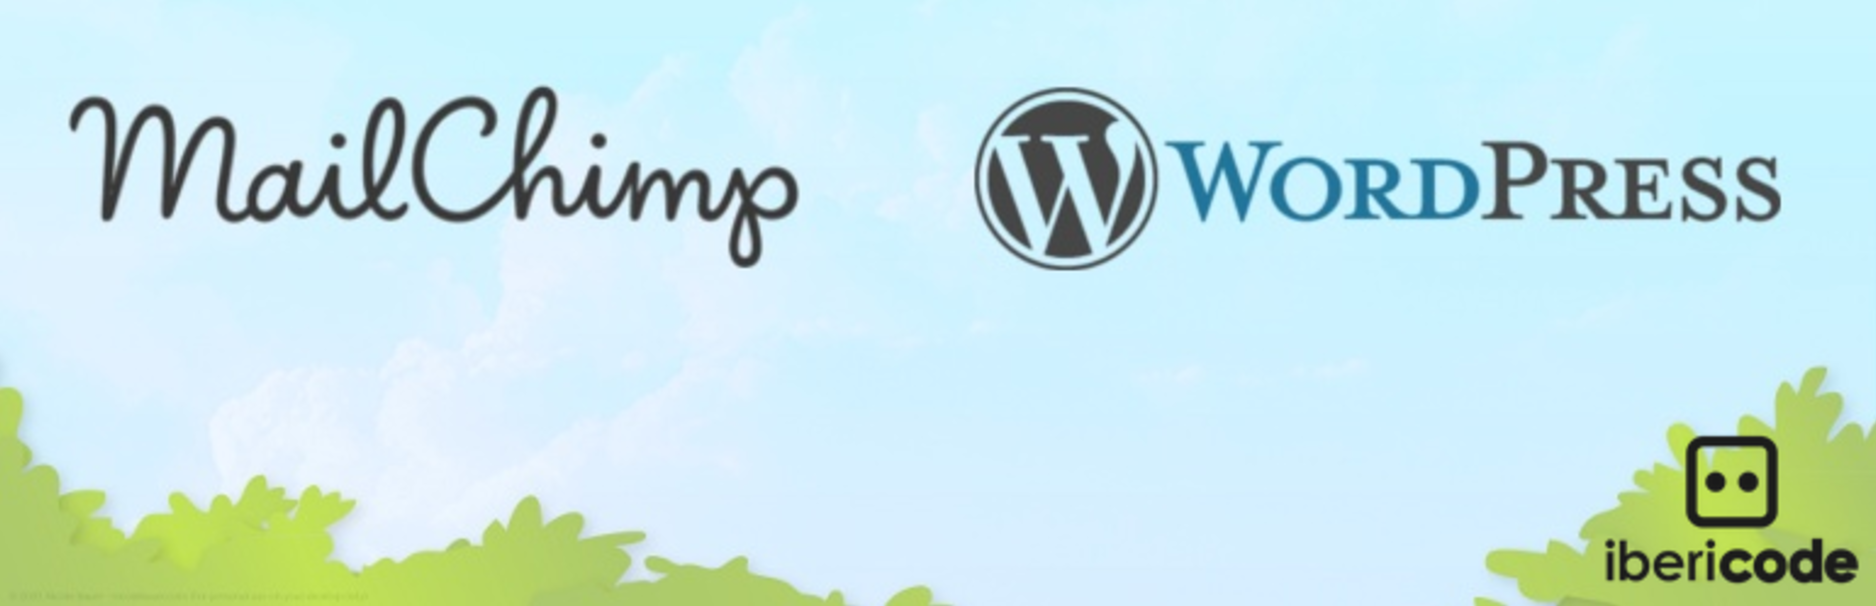 MailChimp за WordPress